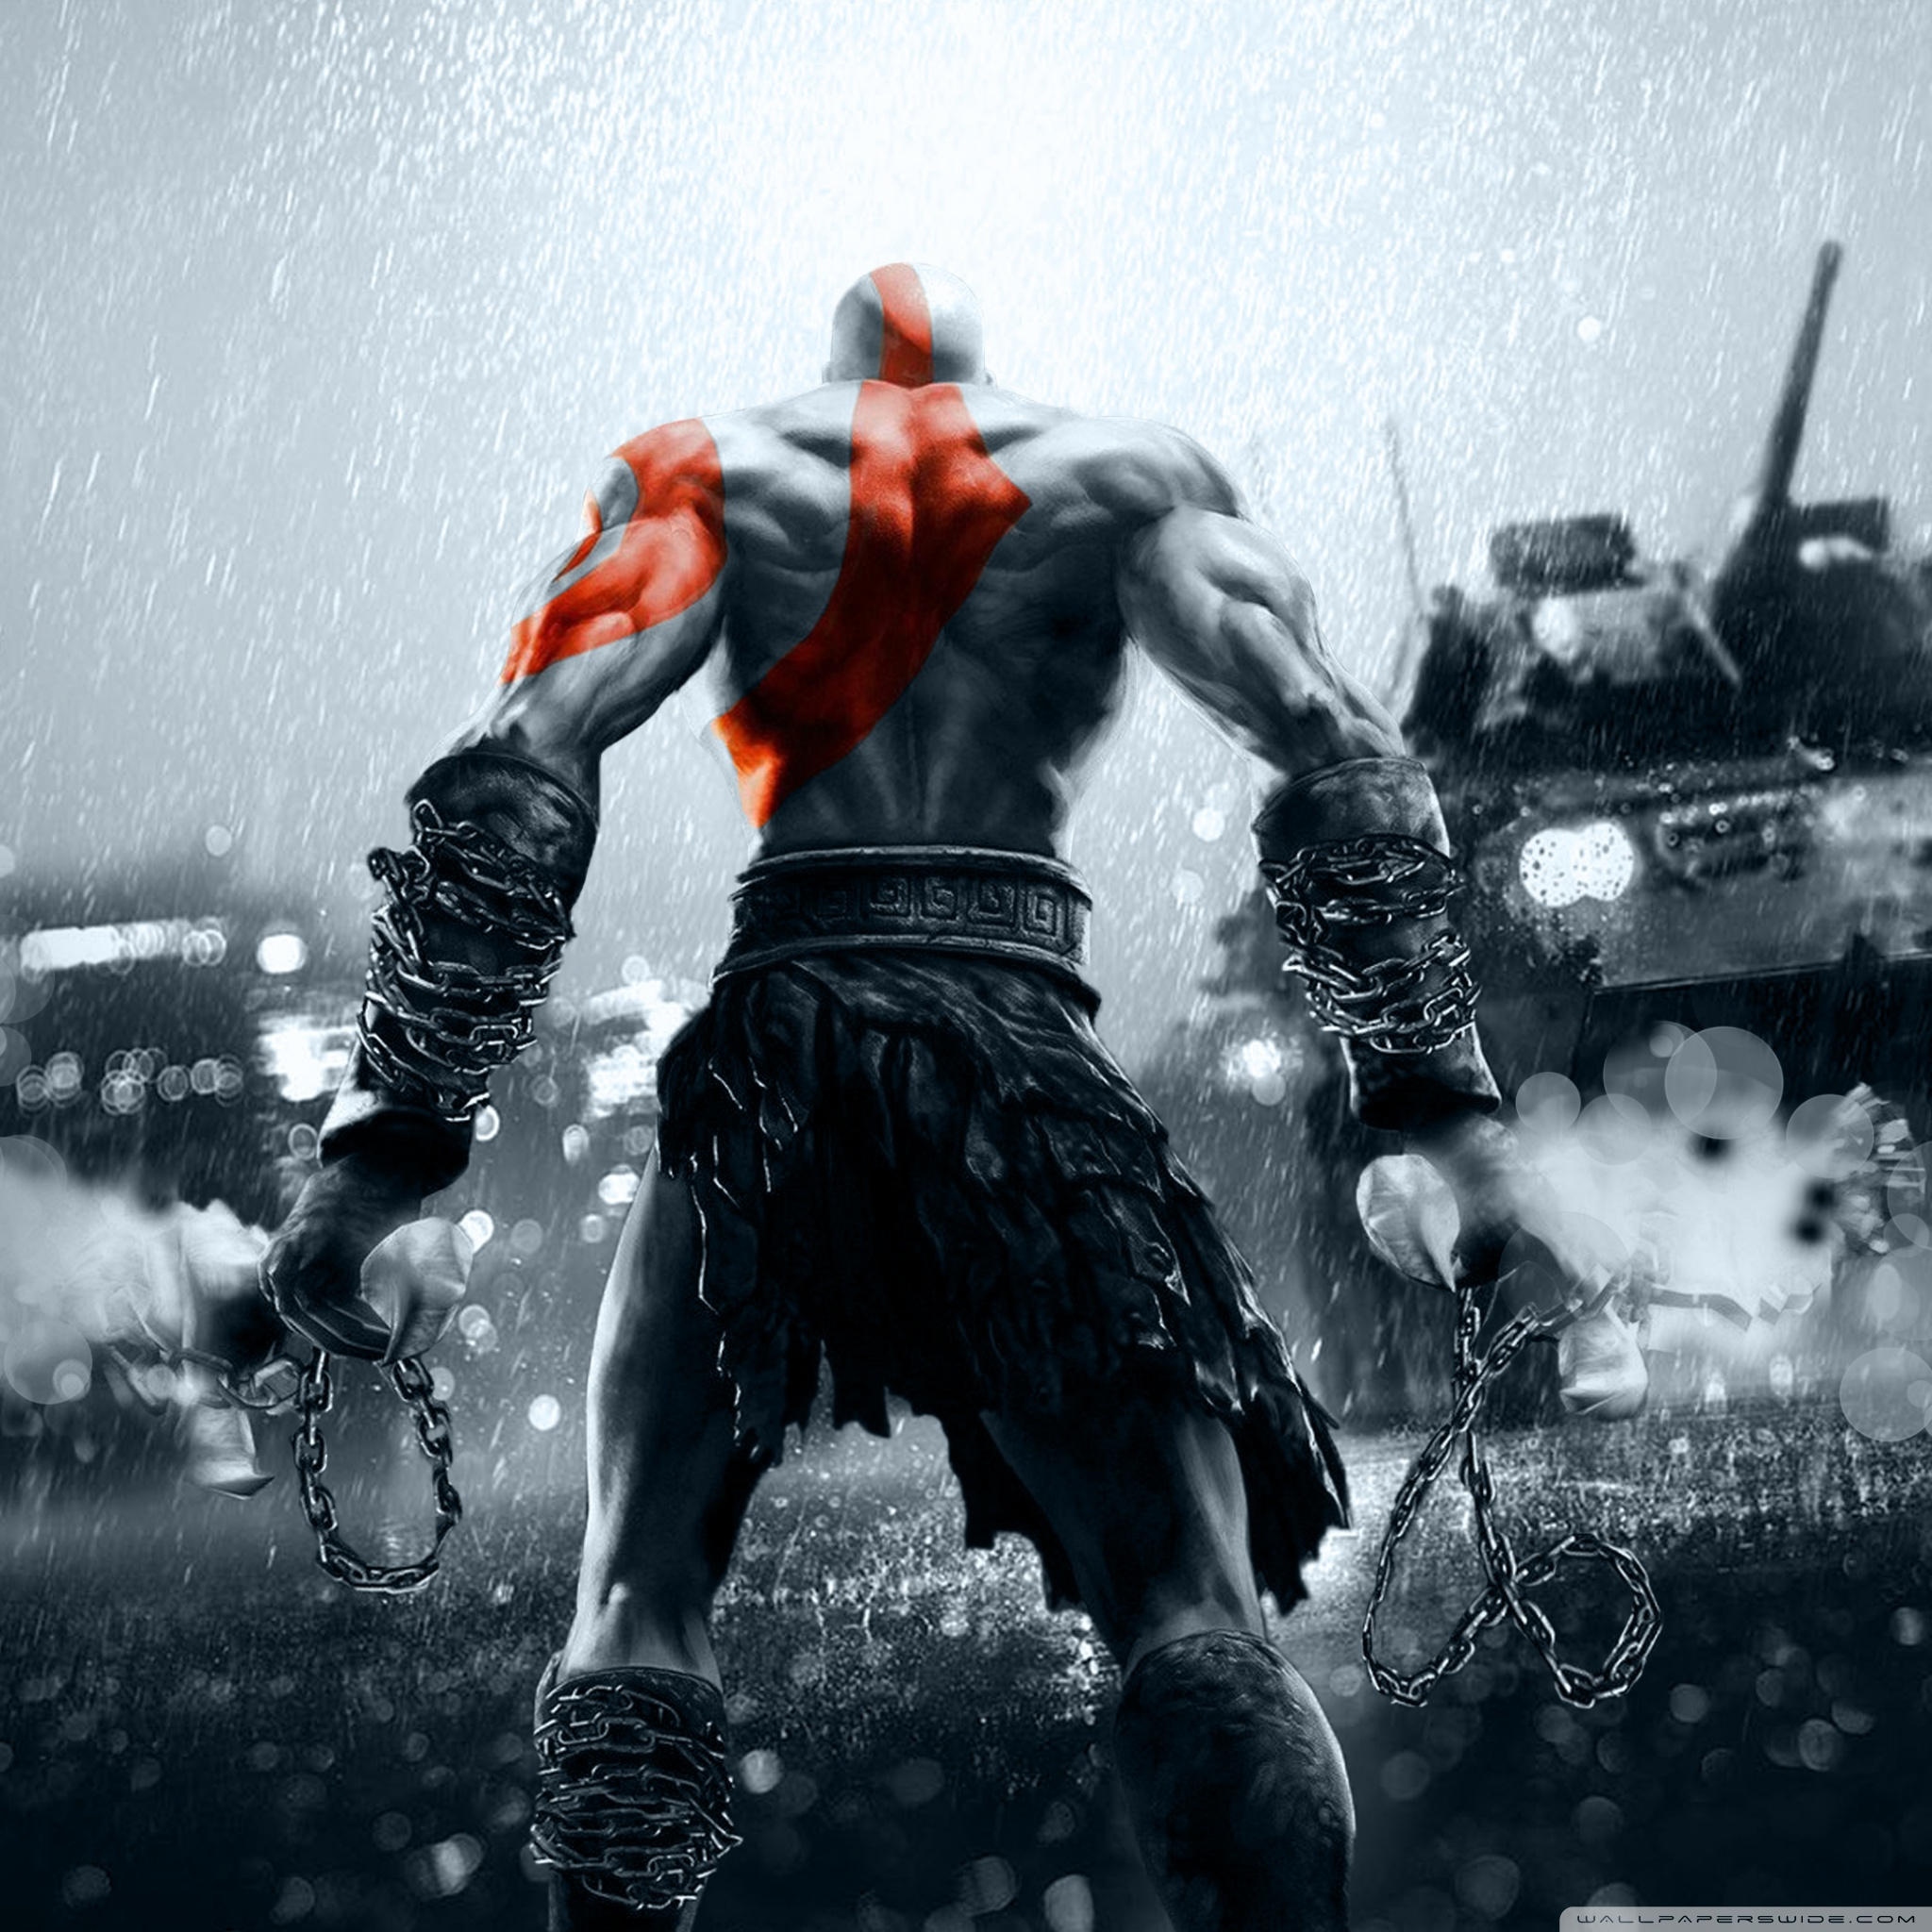 God Of War Hd Wallpapers For Mobile - HD Wallpaper